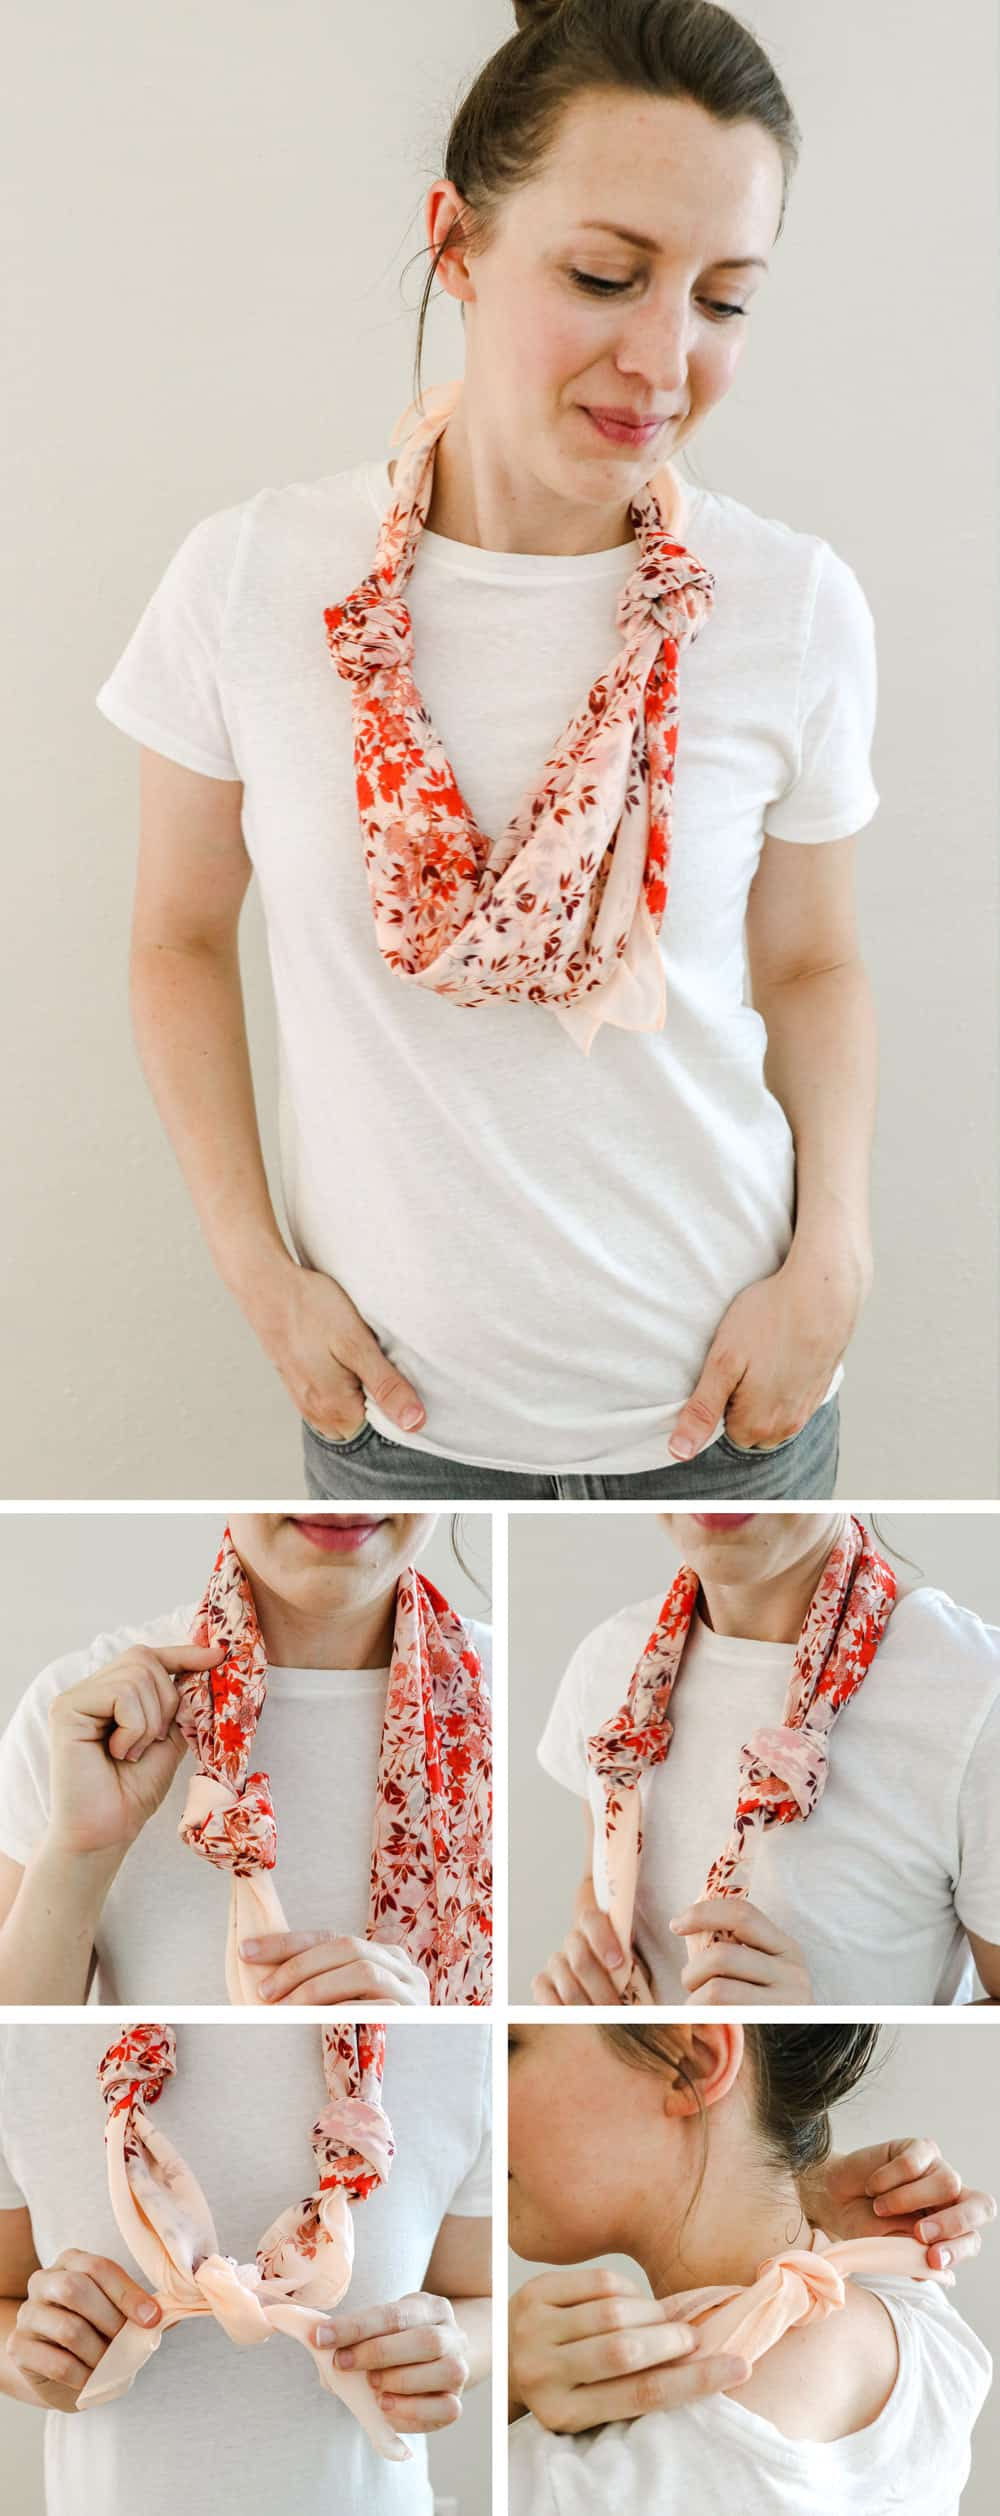 Knotted Necklace | 19 Ways to Tie a Scarf